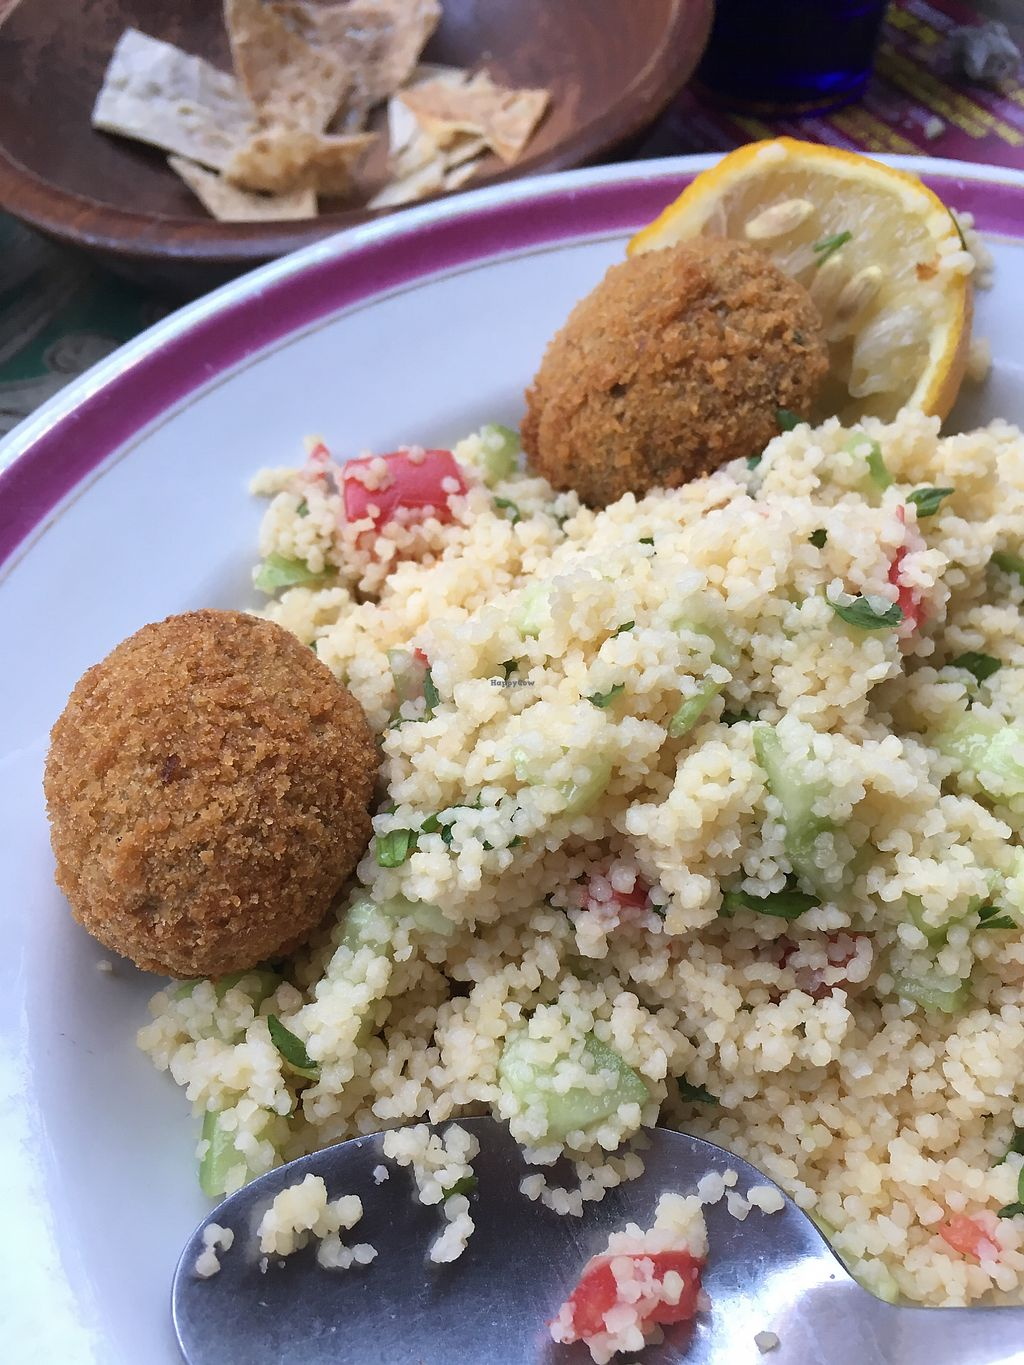 """Photo of Kafe Leila  by <a href=""""/members/profile/KatyaOh"""">KatyaOh</a> <br/>Falafel with couscous  <br/> September 5, 2017  - <a href='/contact/abuse/image/61044/301175'>Report</a>"""